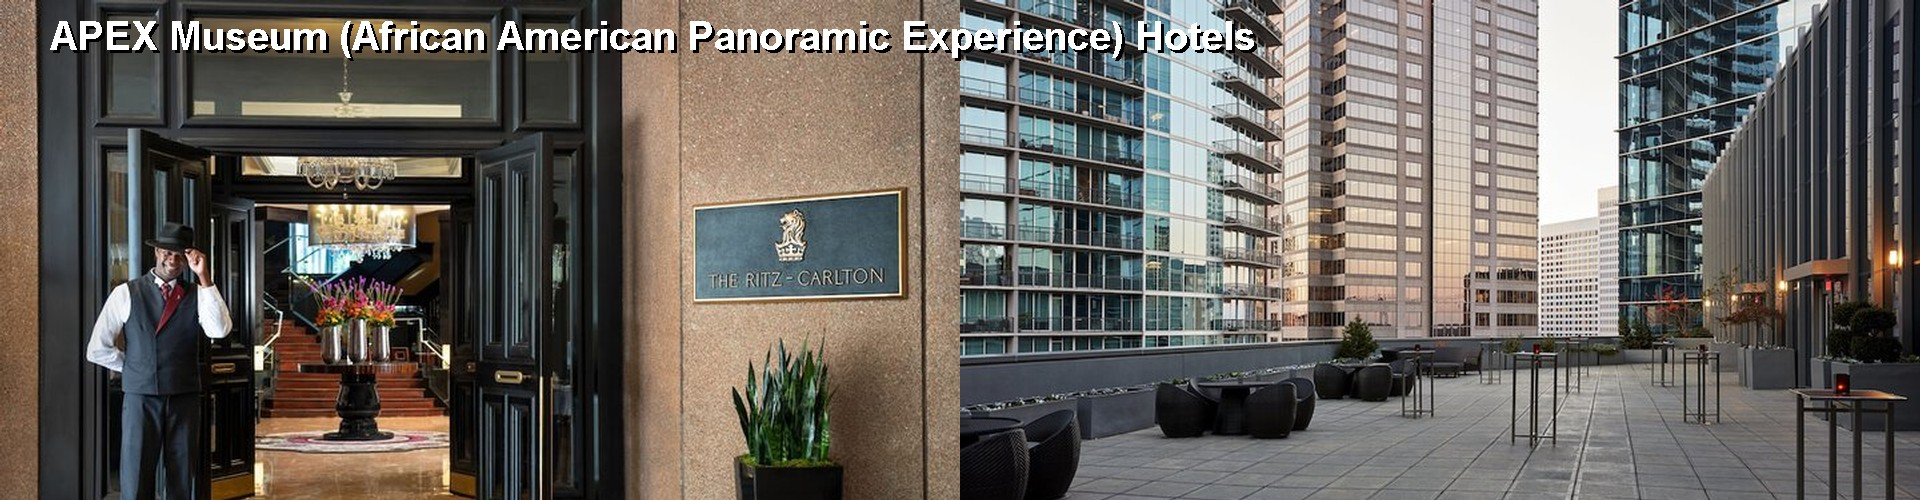 5 Best Hotels near APEX Museum (African American Panoramic Experience)